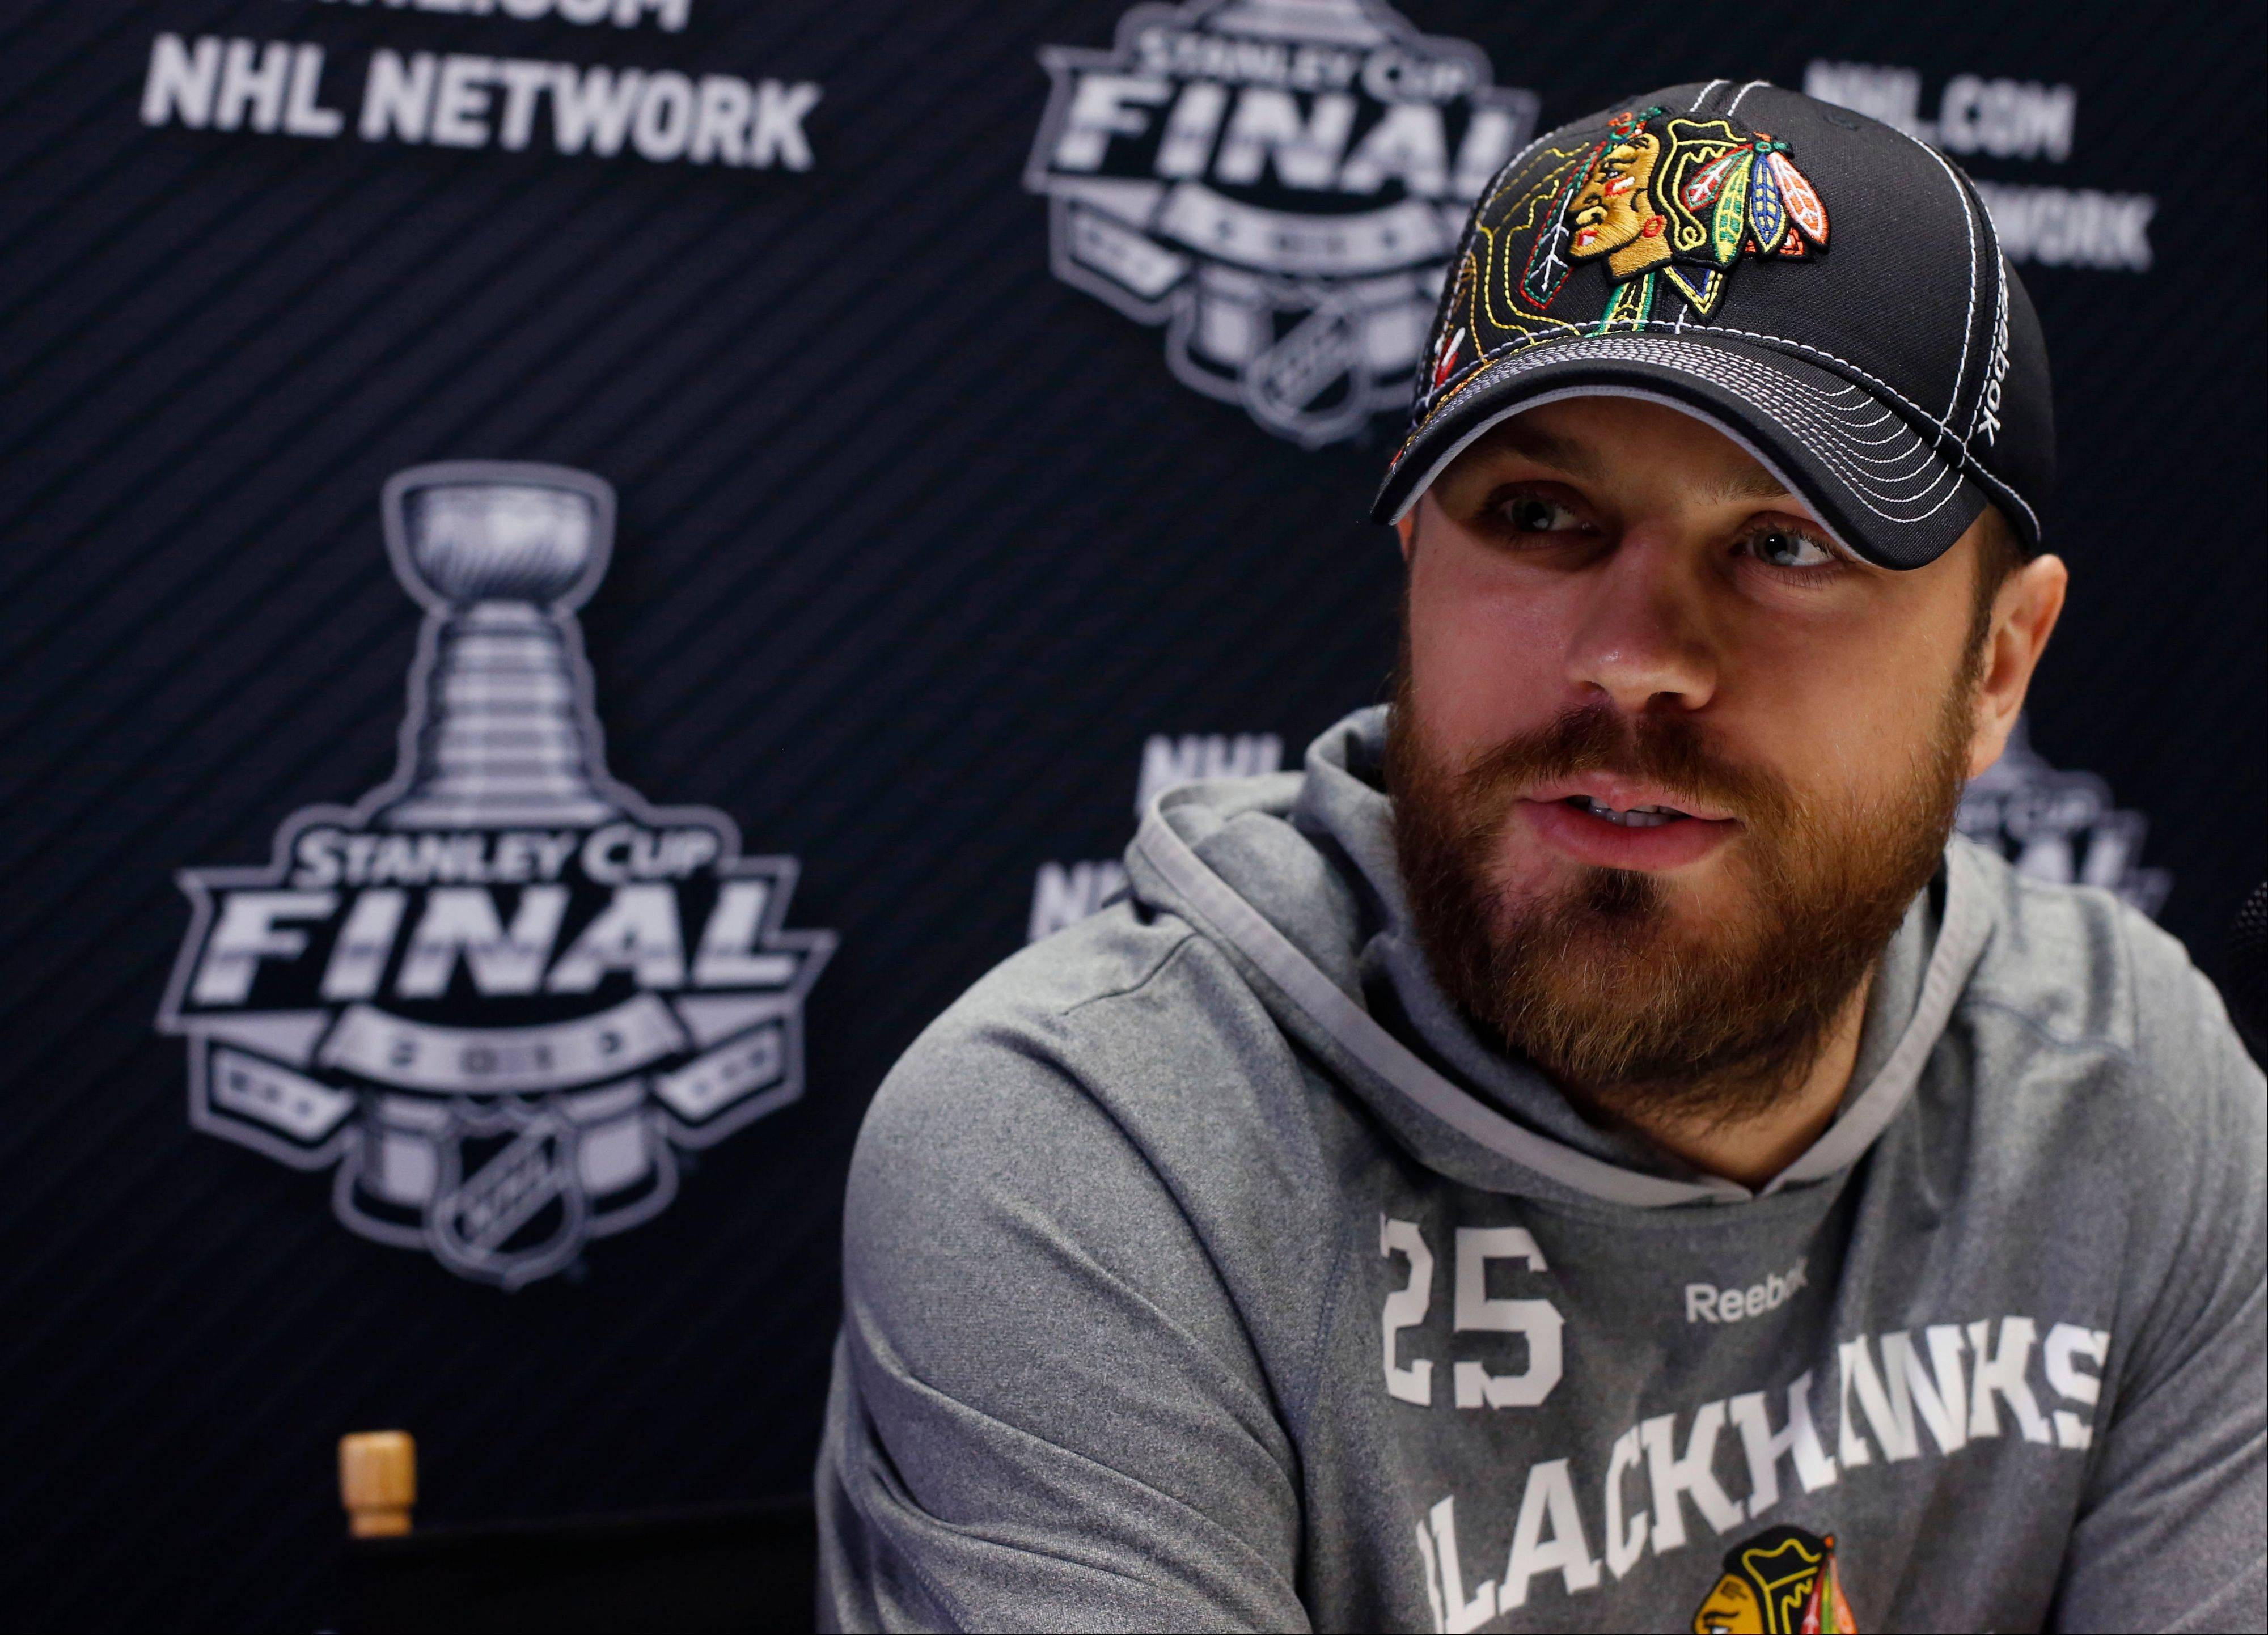 Ex-Hawk Stalberg believes he can help Predators win again